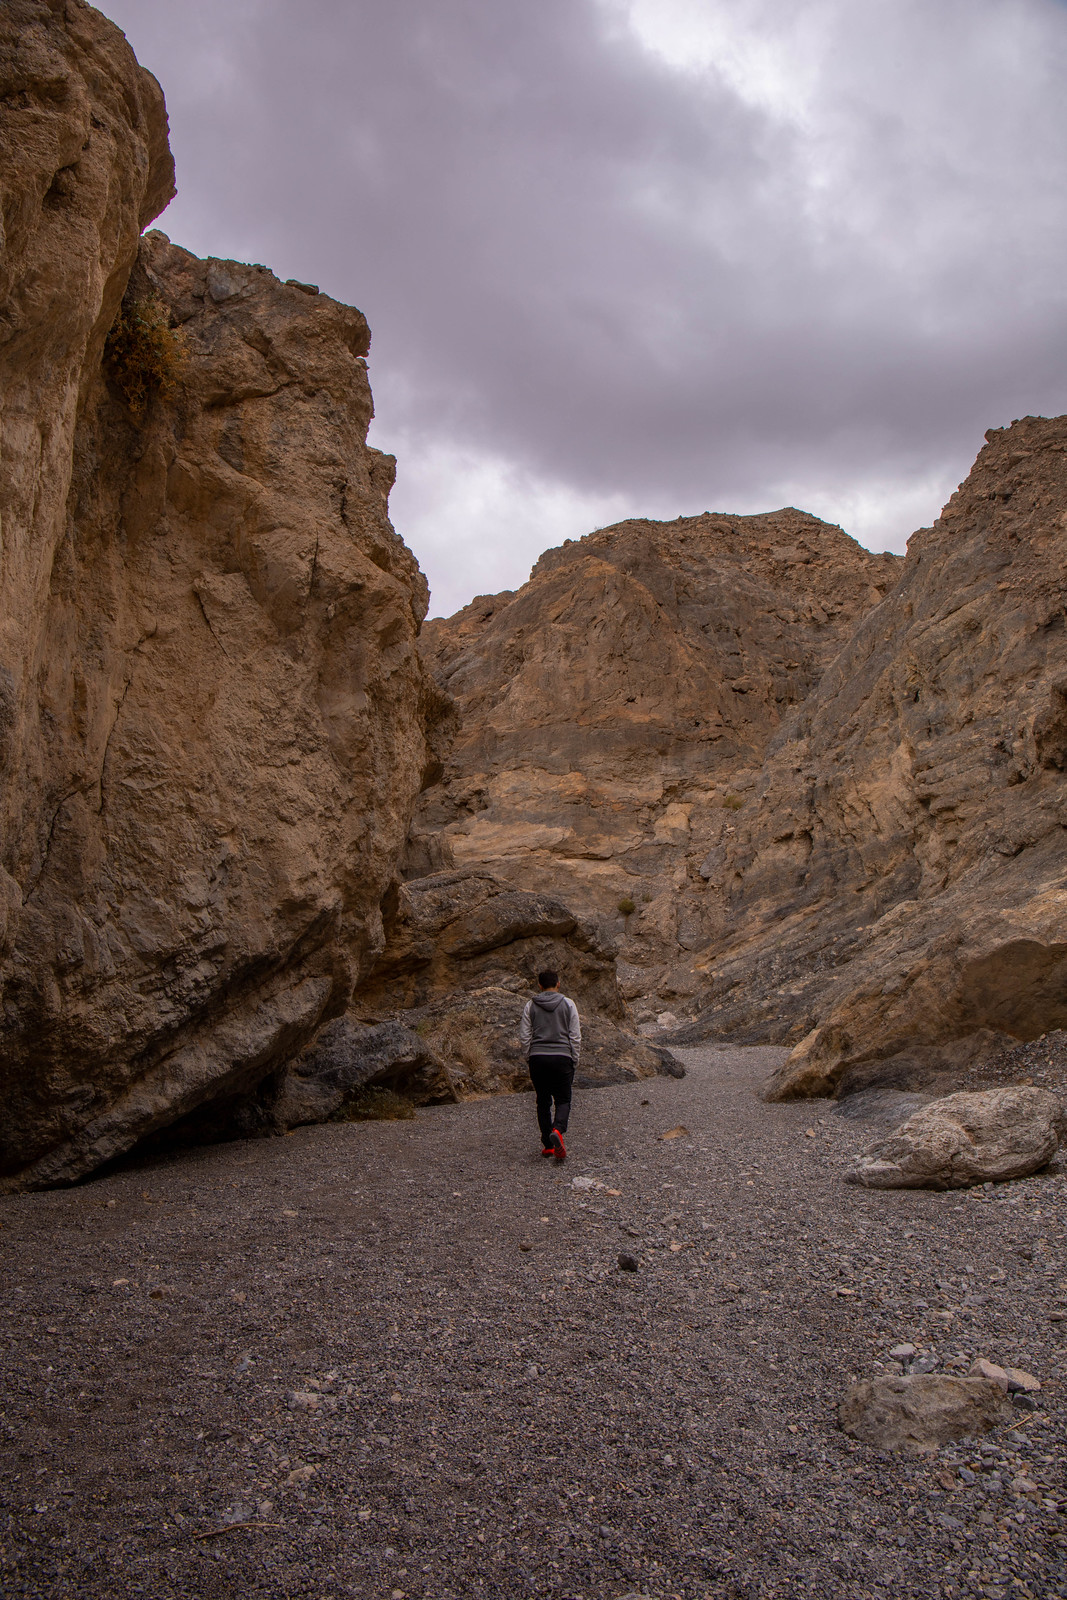 02.17. Death Valley National Park